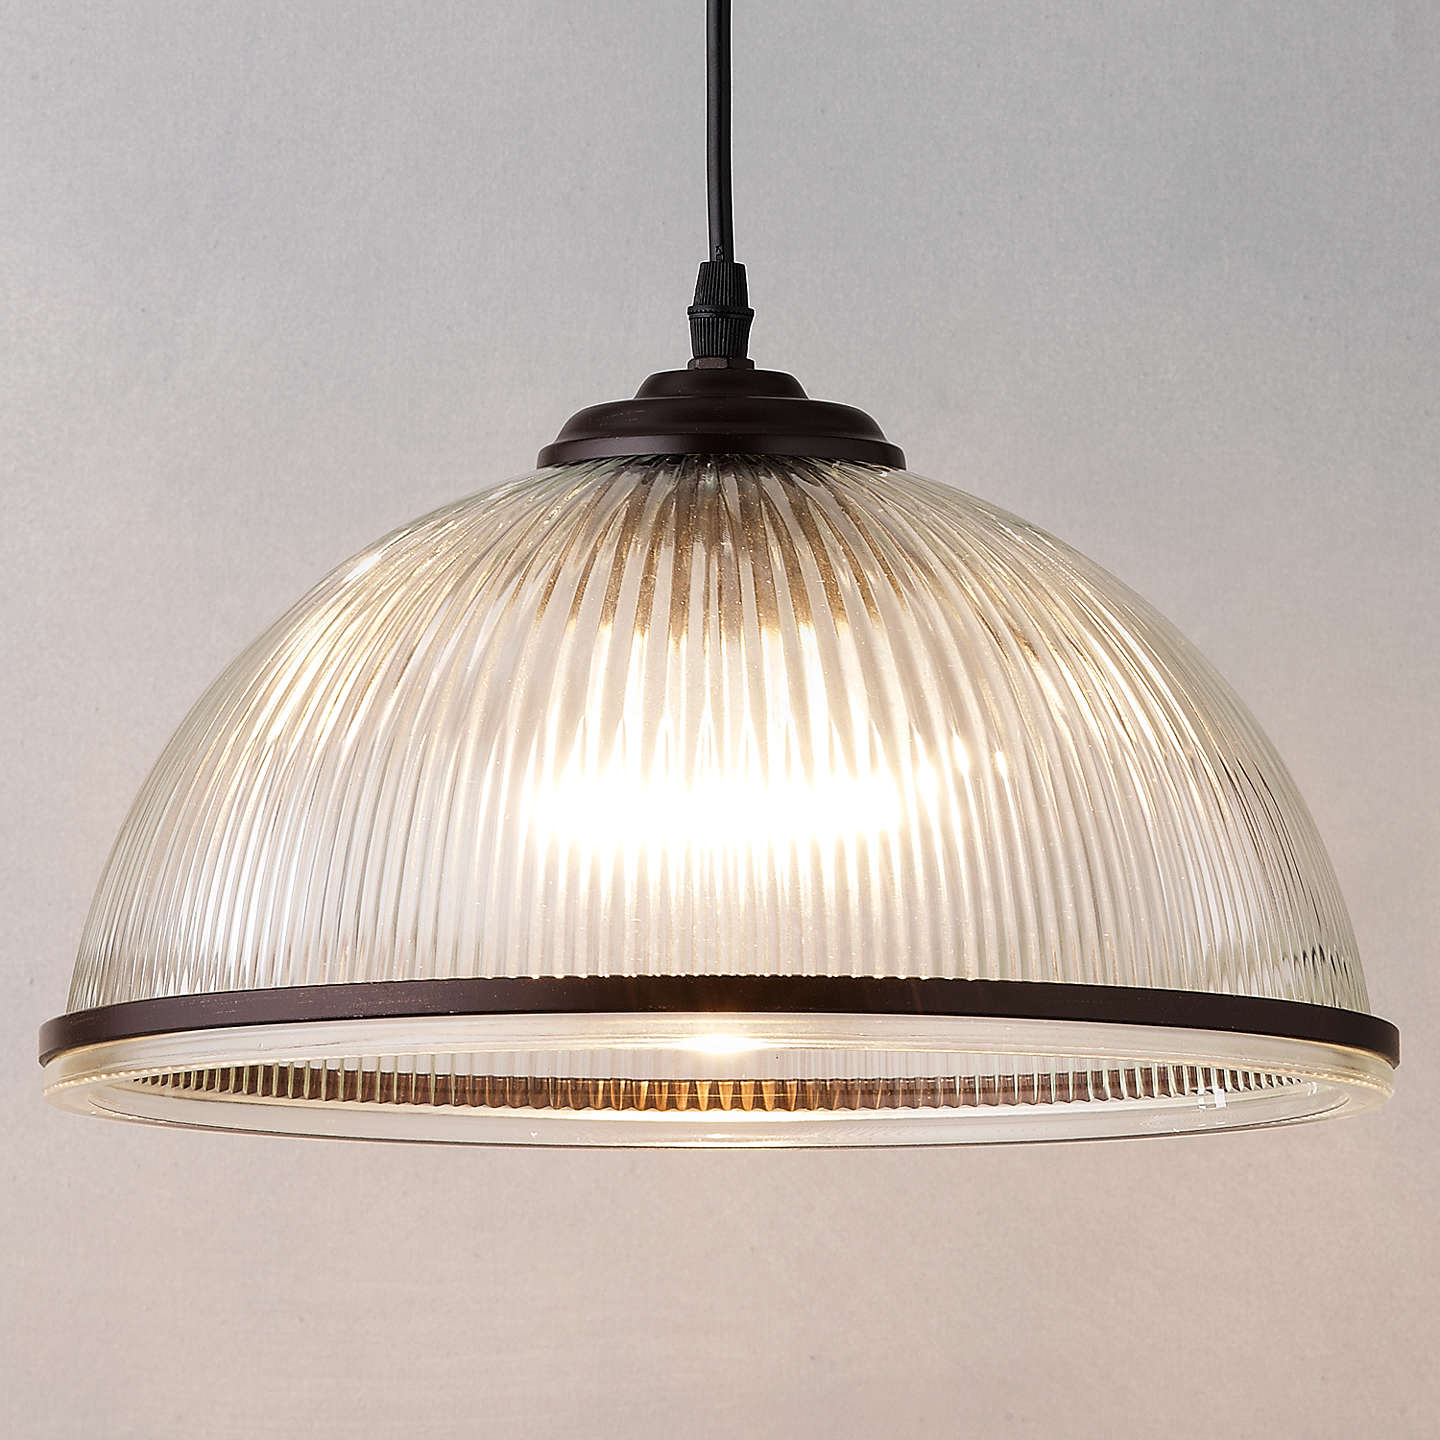 John lewis tristan ceiling light at john lewis for Kitchen lighting ideas john lewis